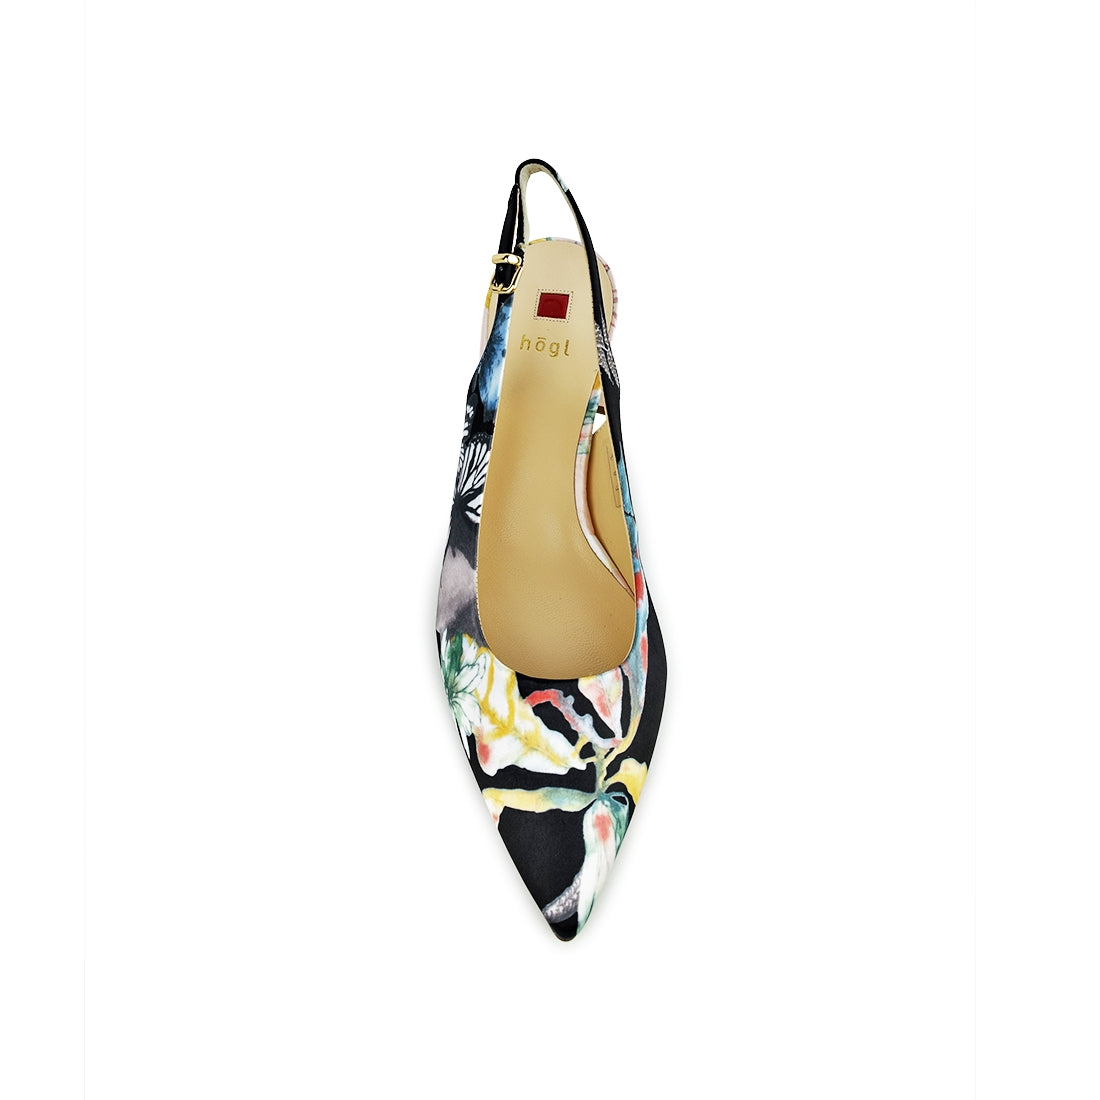 CAROLINA - Hogl Sling Back Black Floral